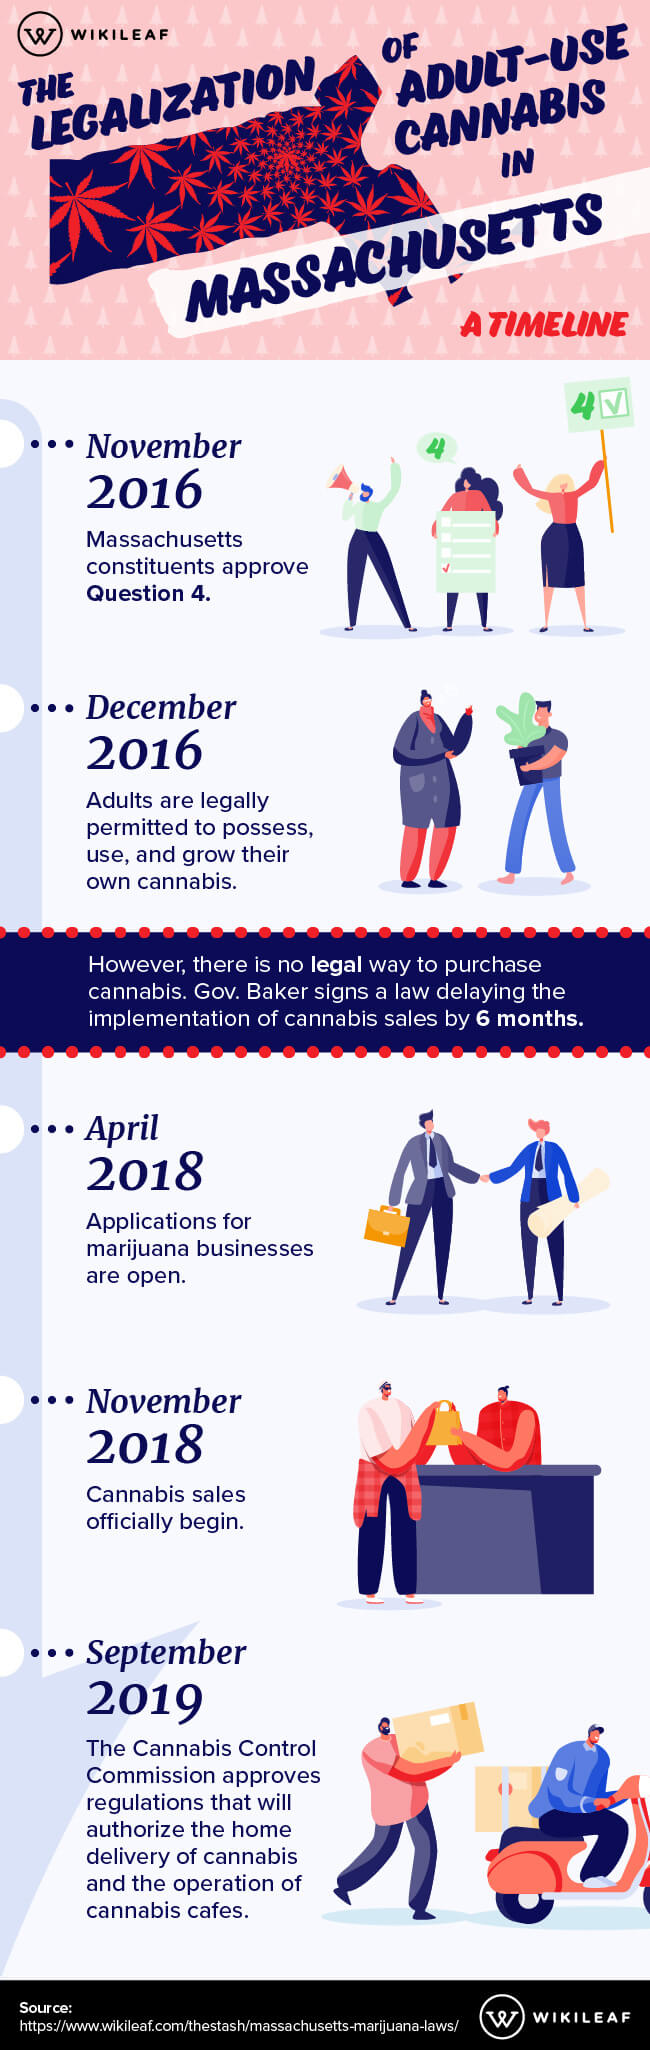 Massachusetts cannabis laws timeline infographic.